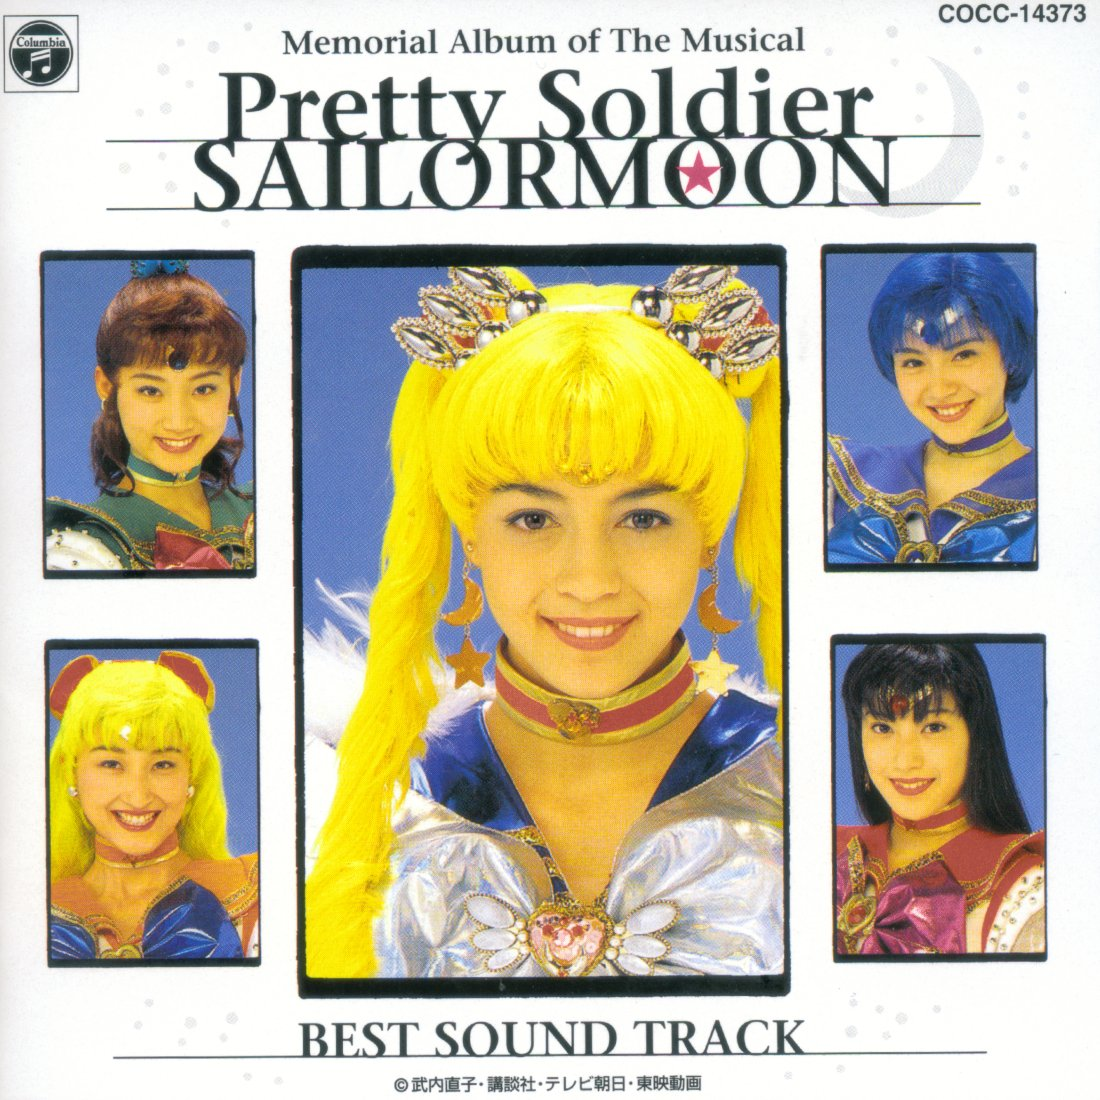 Memorial Album of the Musical - Best Soundtrack